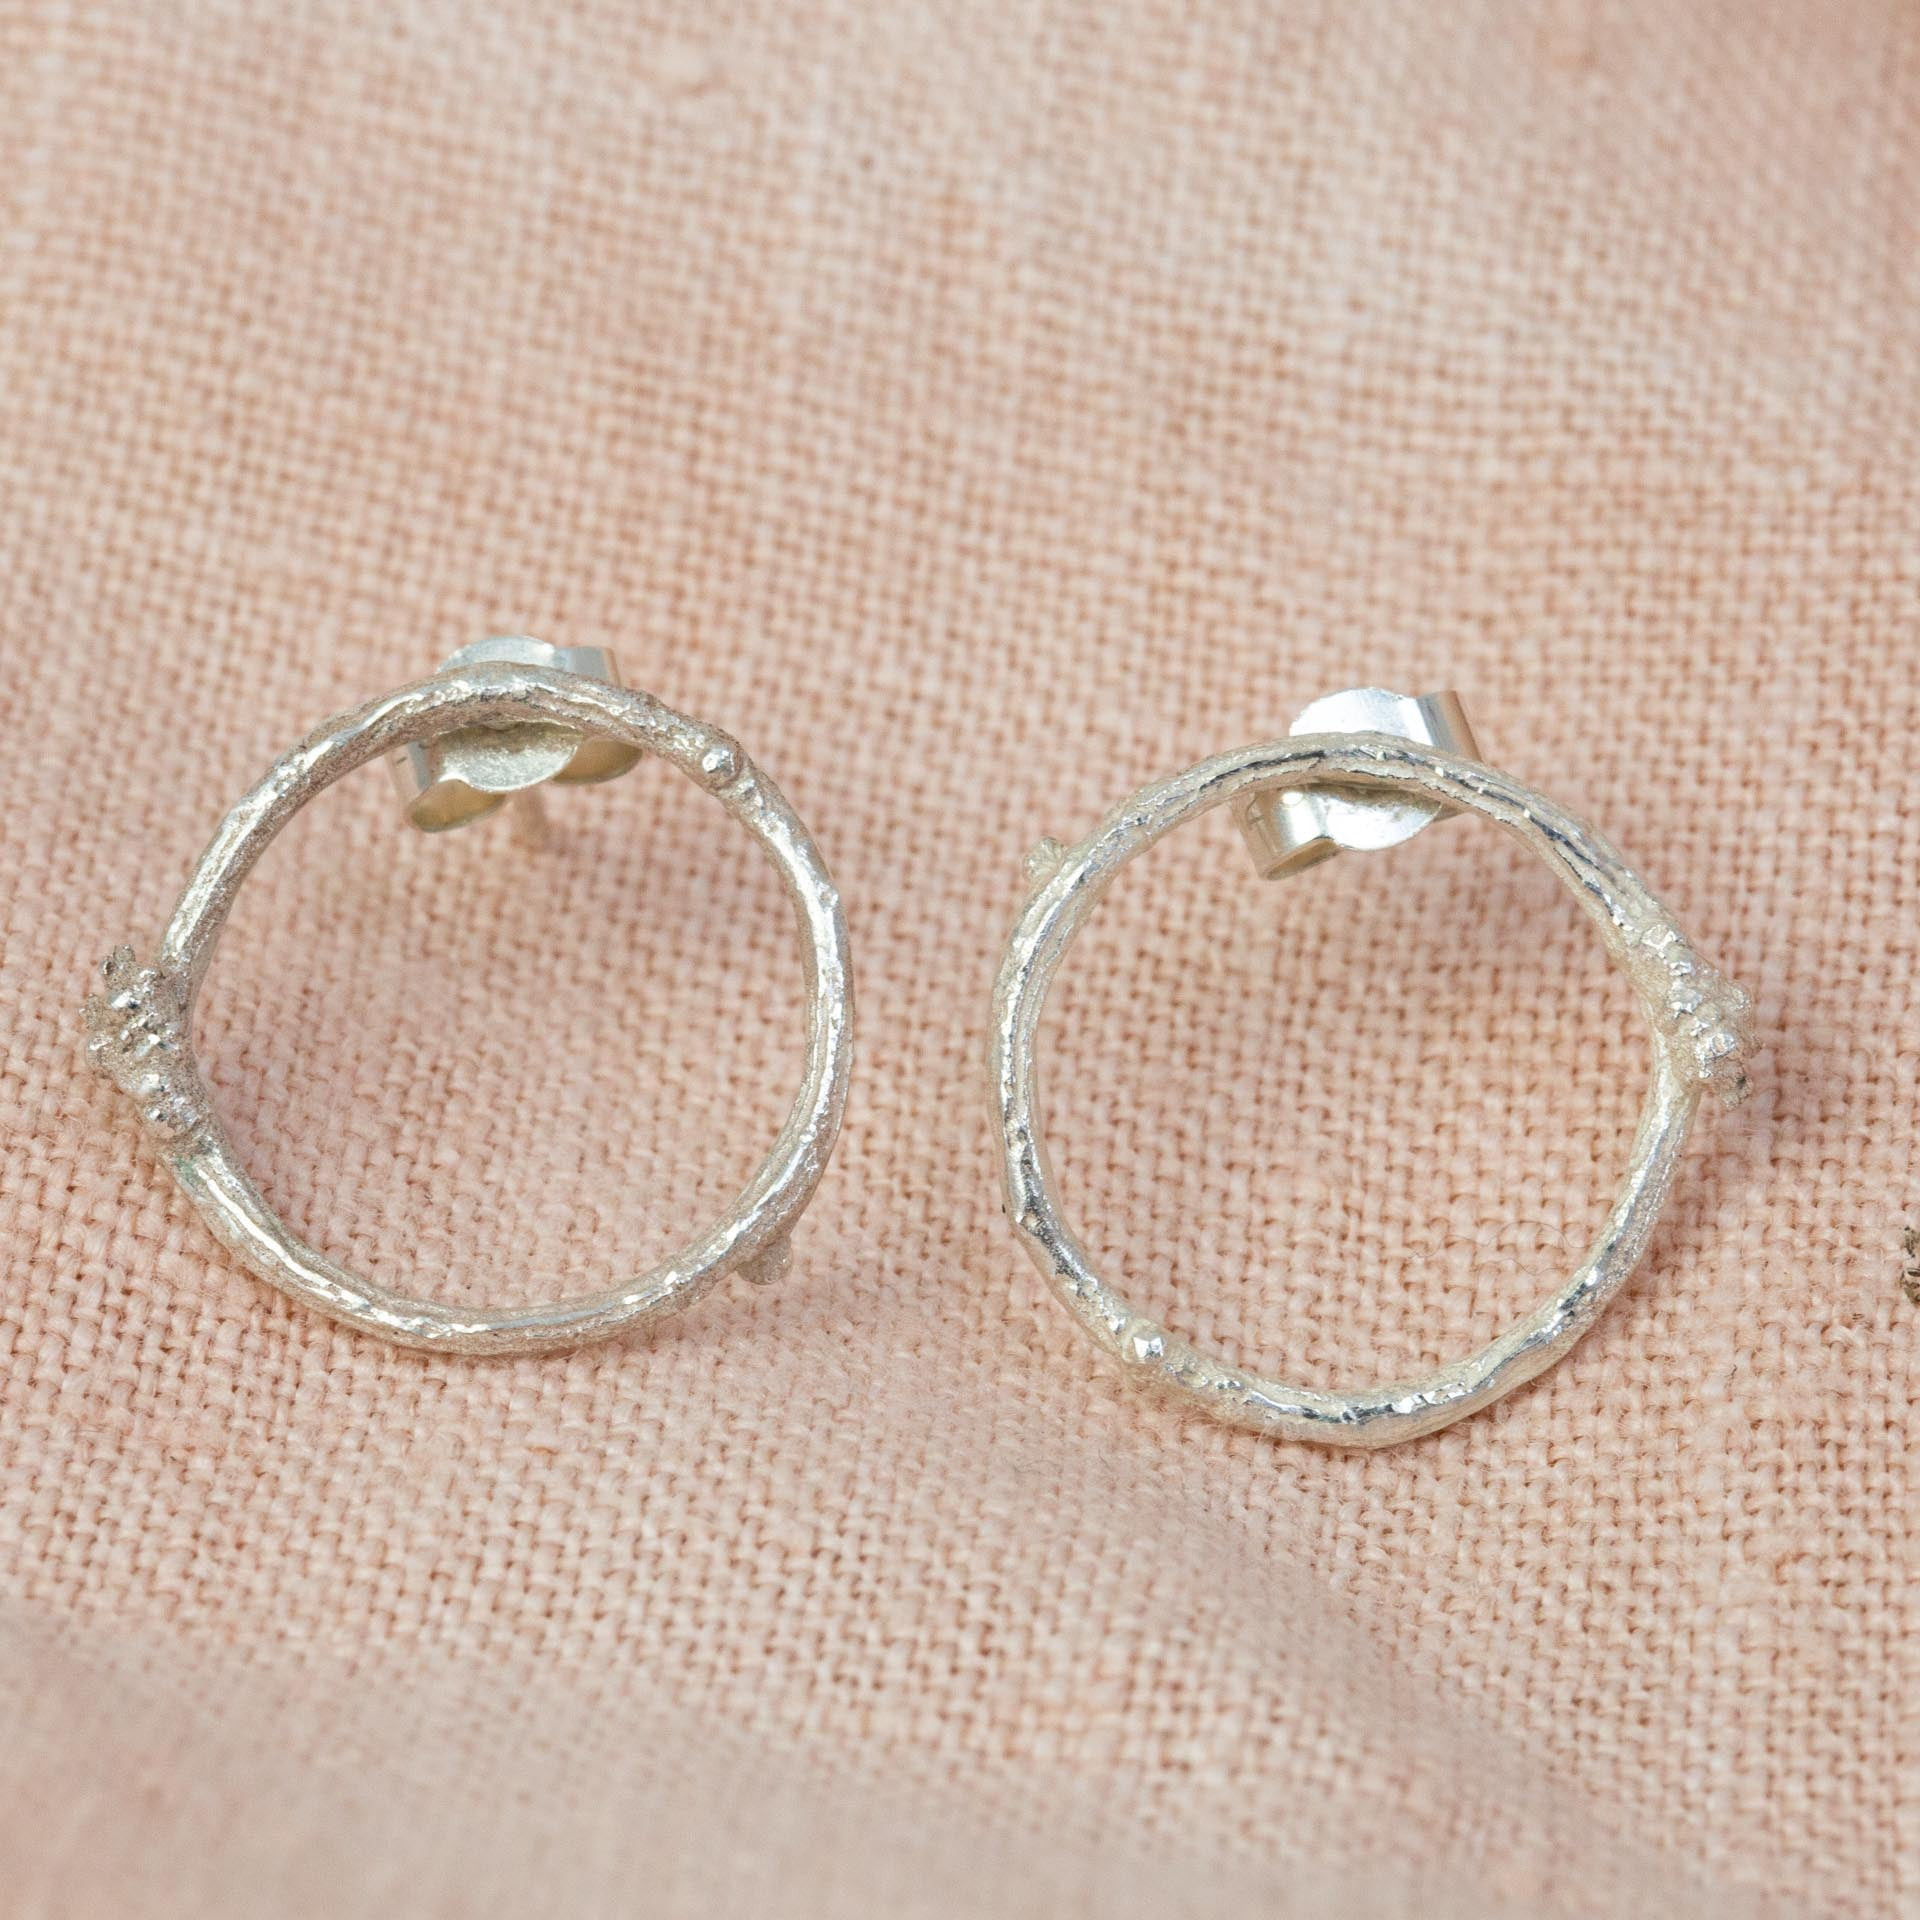 Silver Twig Circle Stud Earrings on stem pink cloth